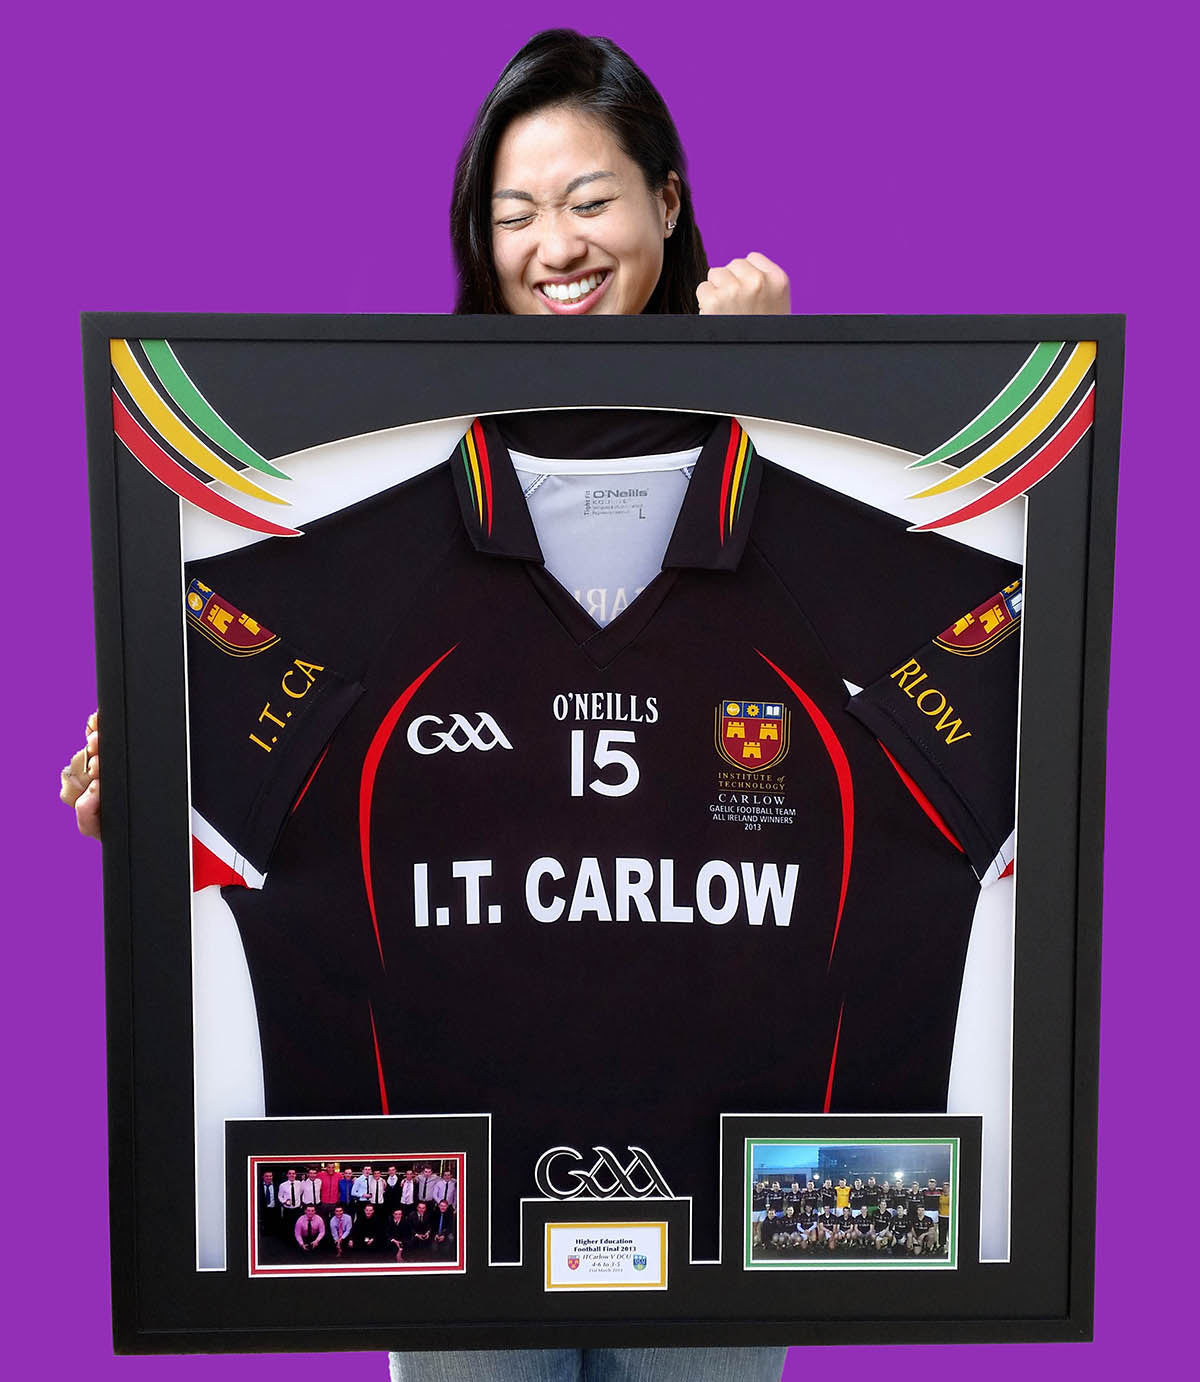 Colleges GAA football jersey frame - with graphic design elements